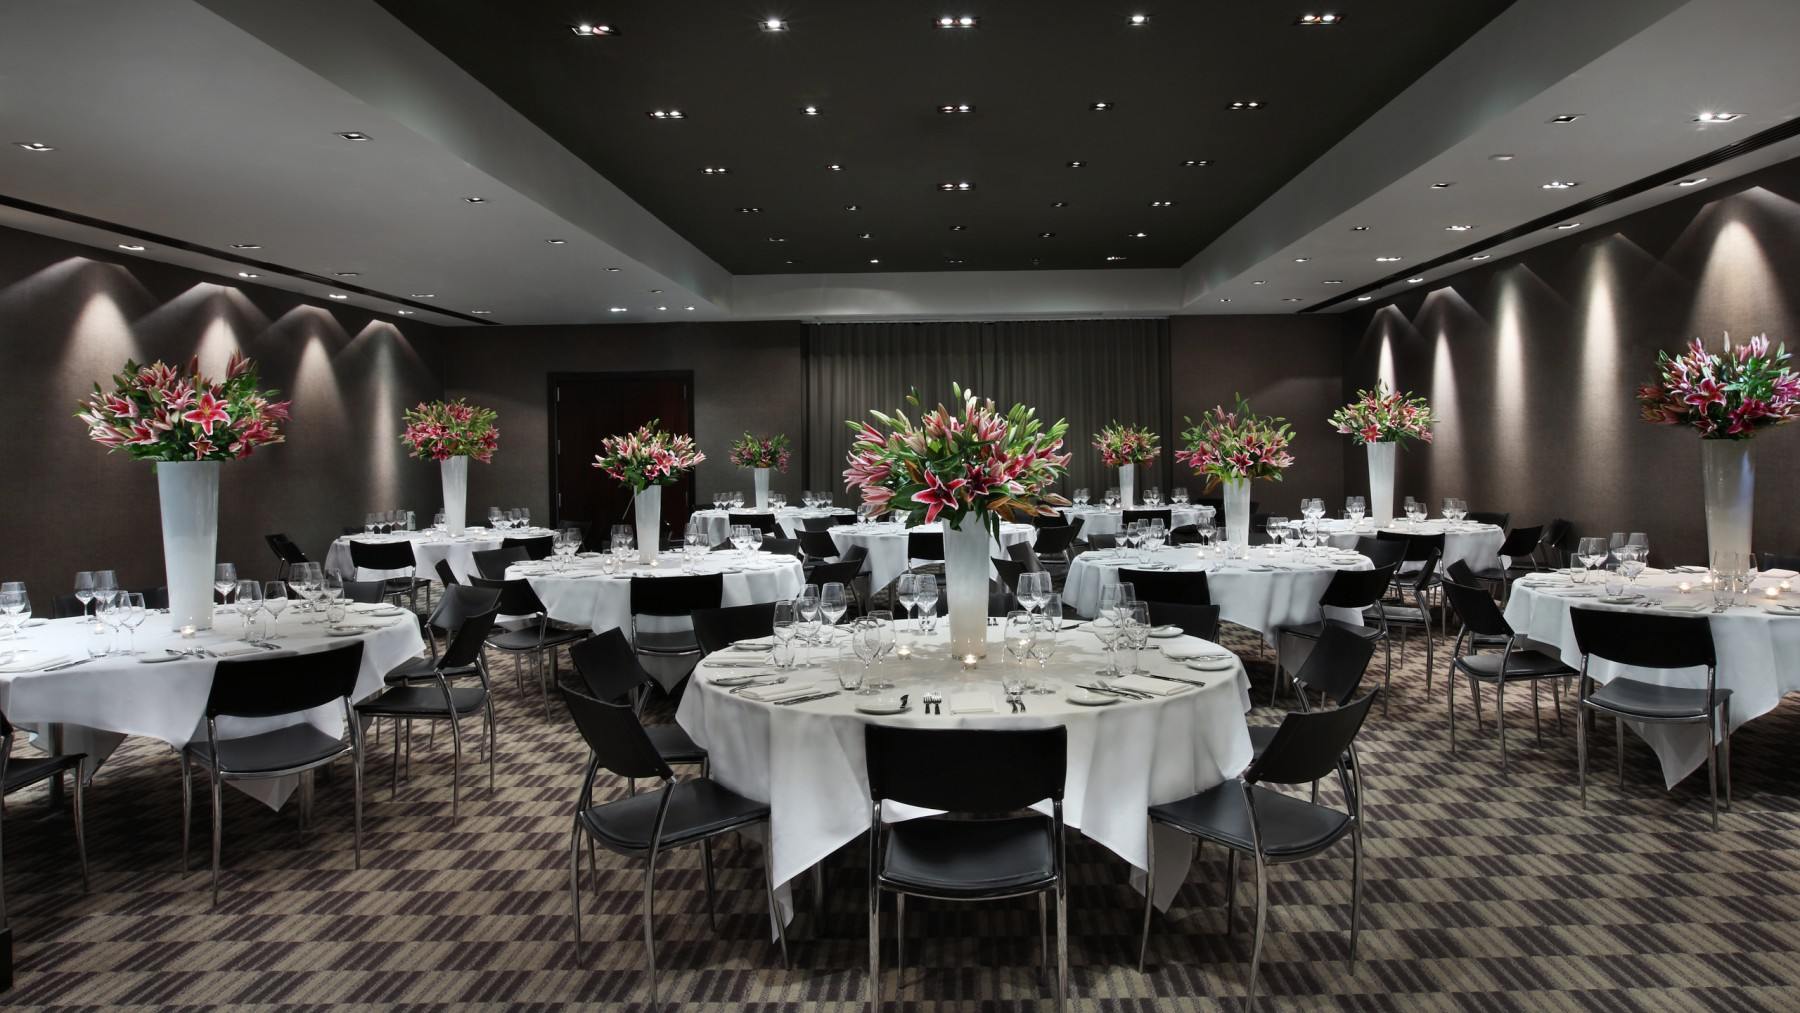 The-Boulevard-Room-banquet-set-up1.jpg